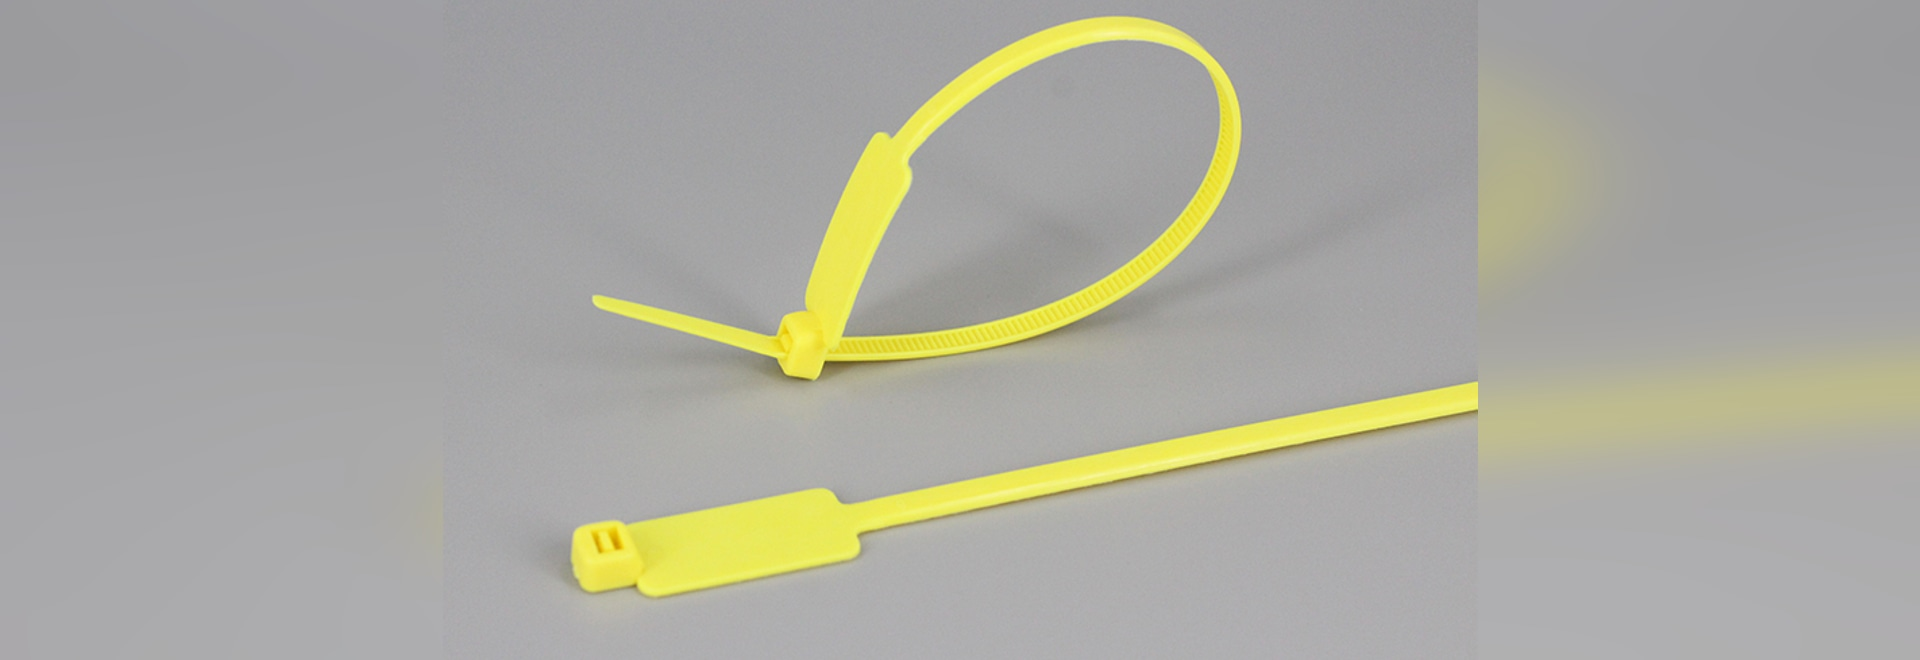 Flag cable tie / Identification ties and plates for marking cable ...